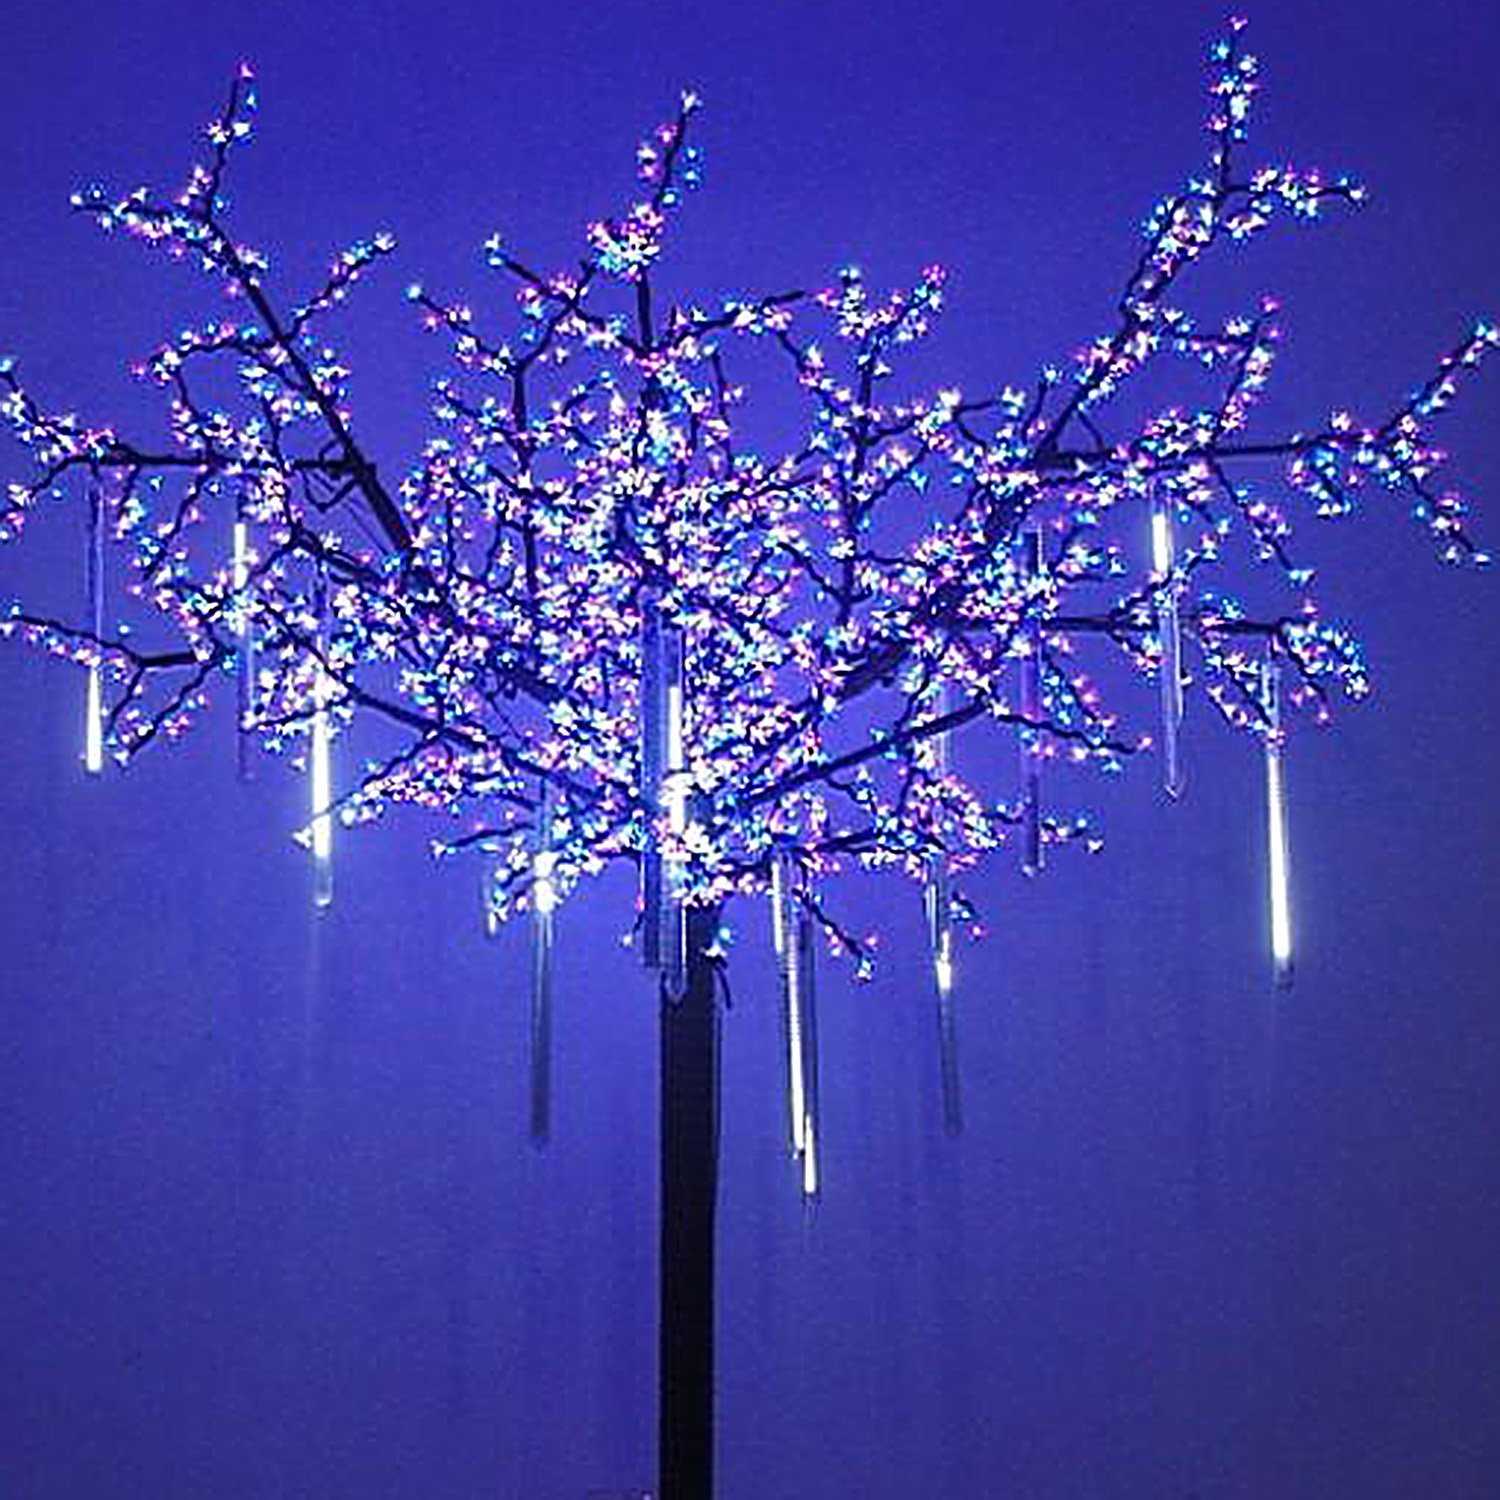 Shorten String Christmas Lights : Best Christmas Lights You Can Get To Put Up Light Display